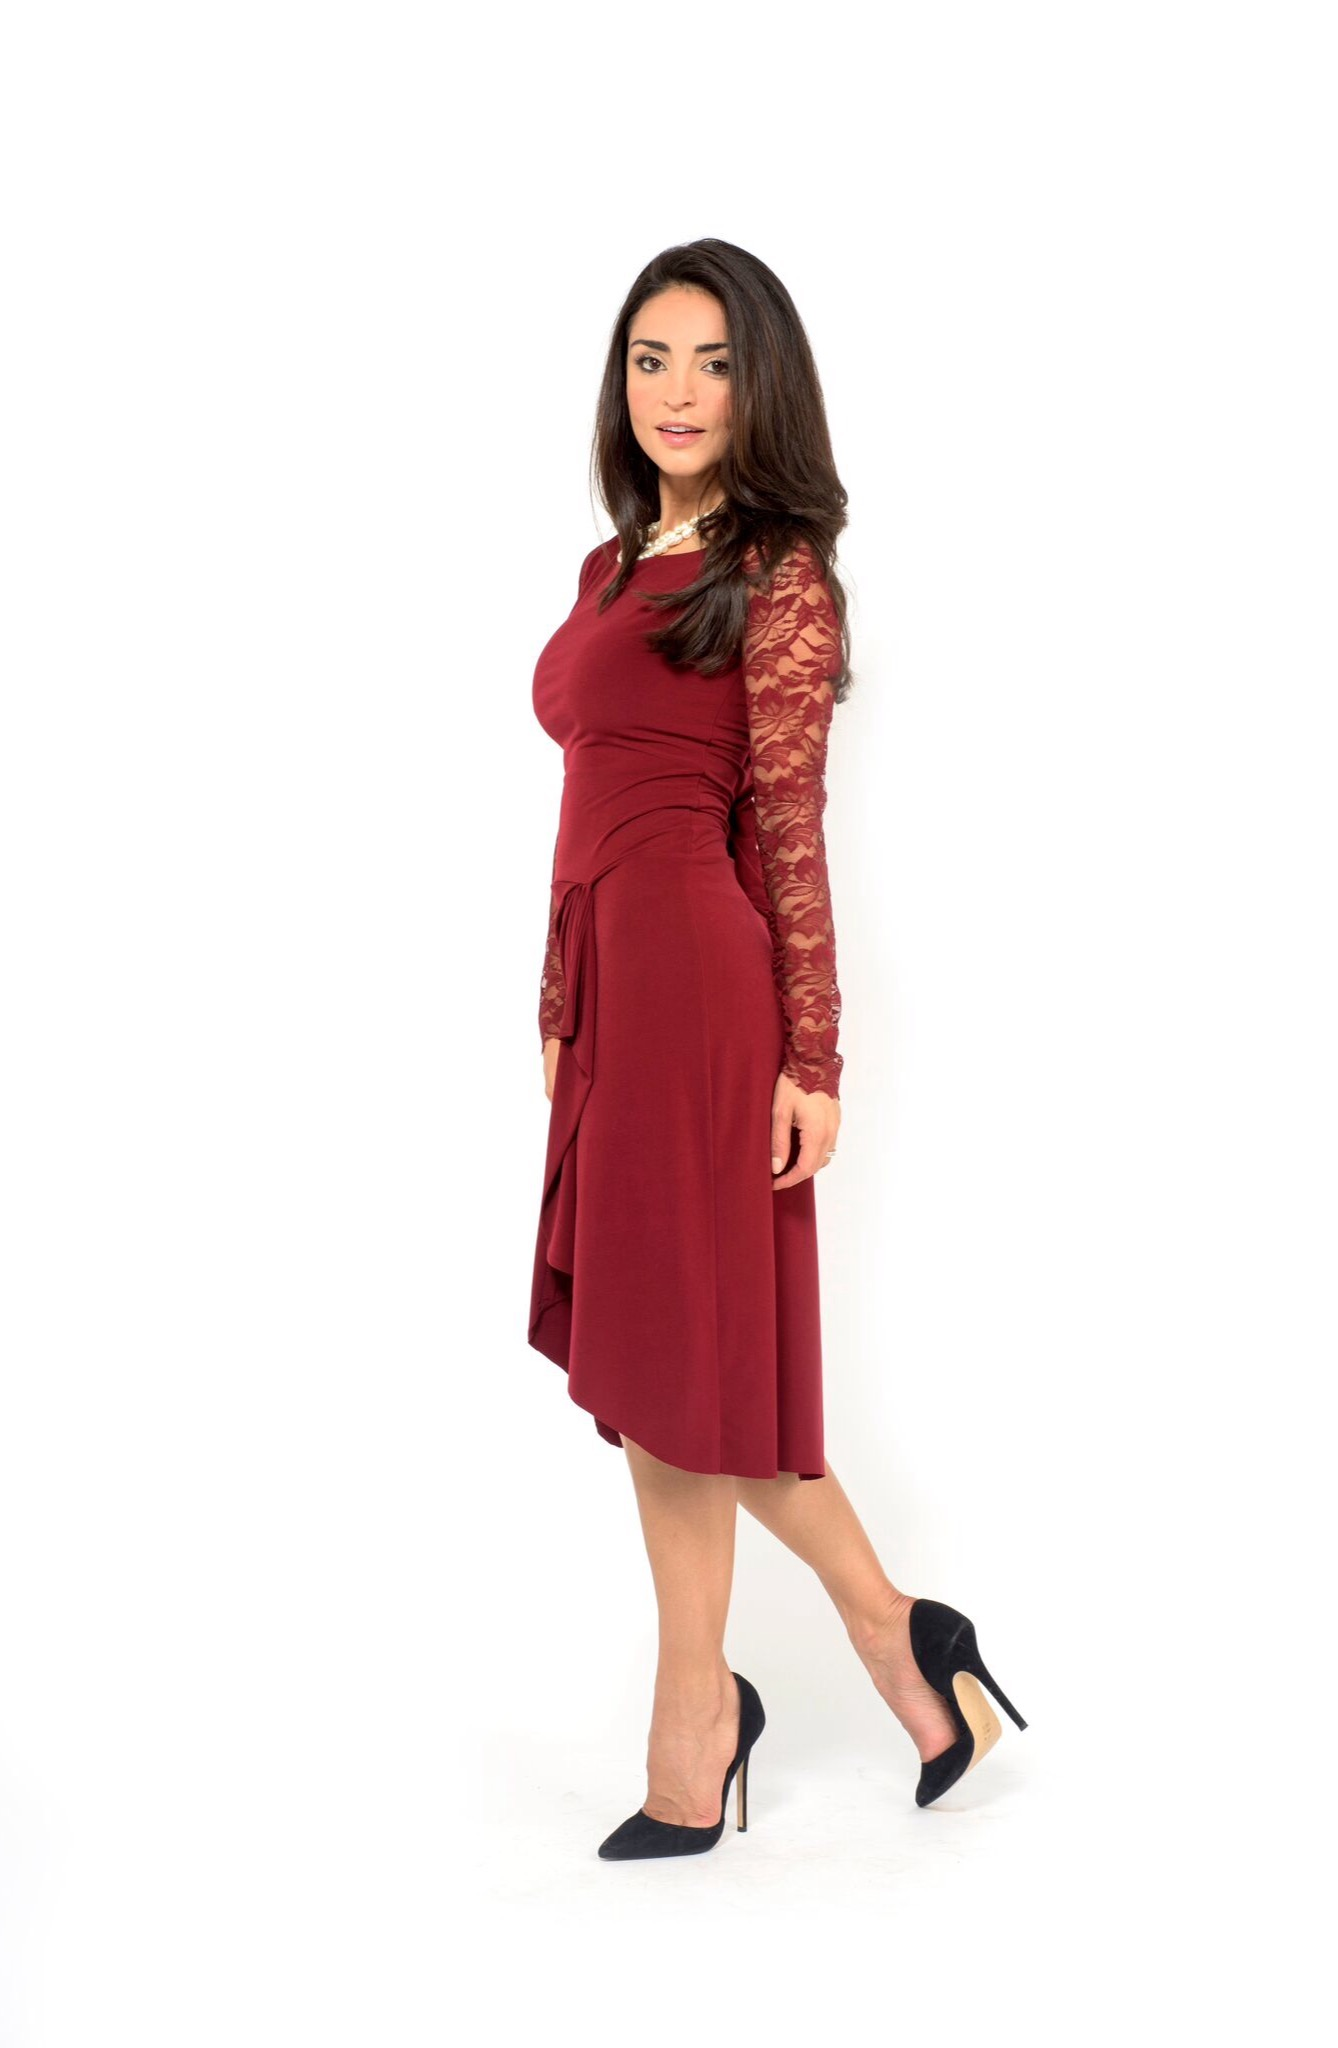 Tango dress bordeaux, long sleeves lace